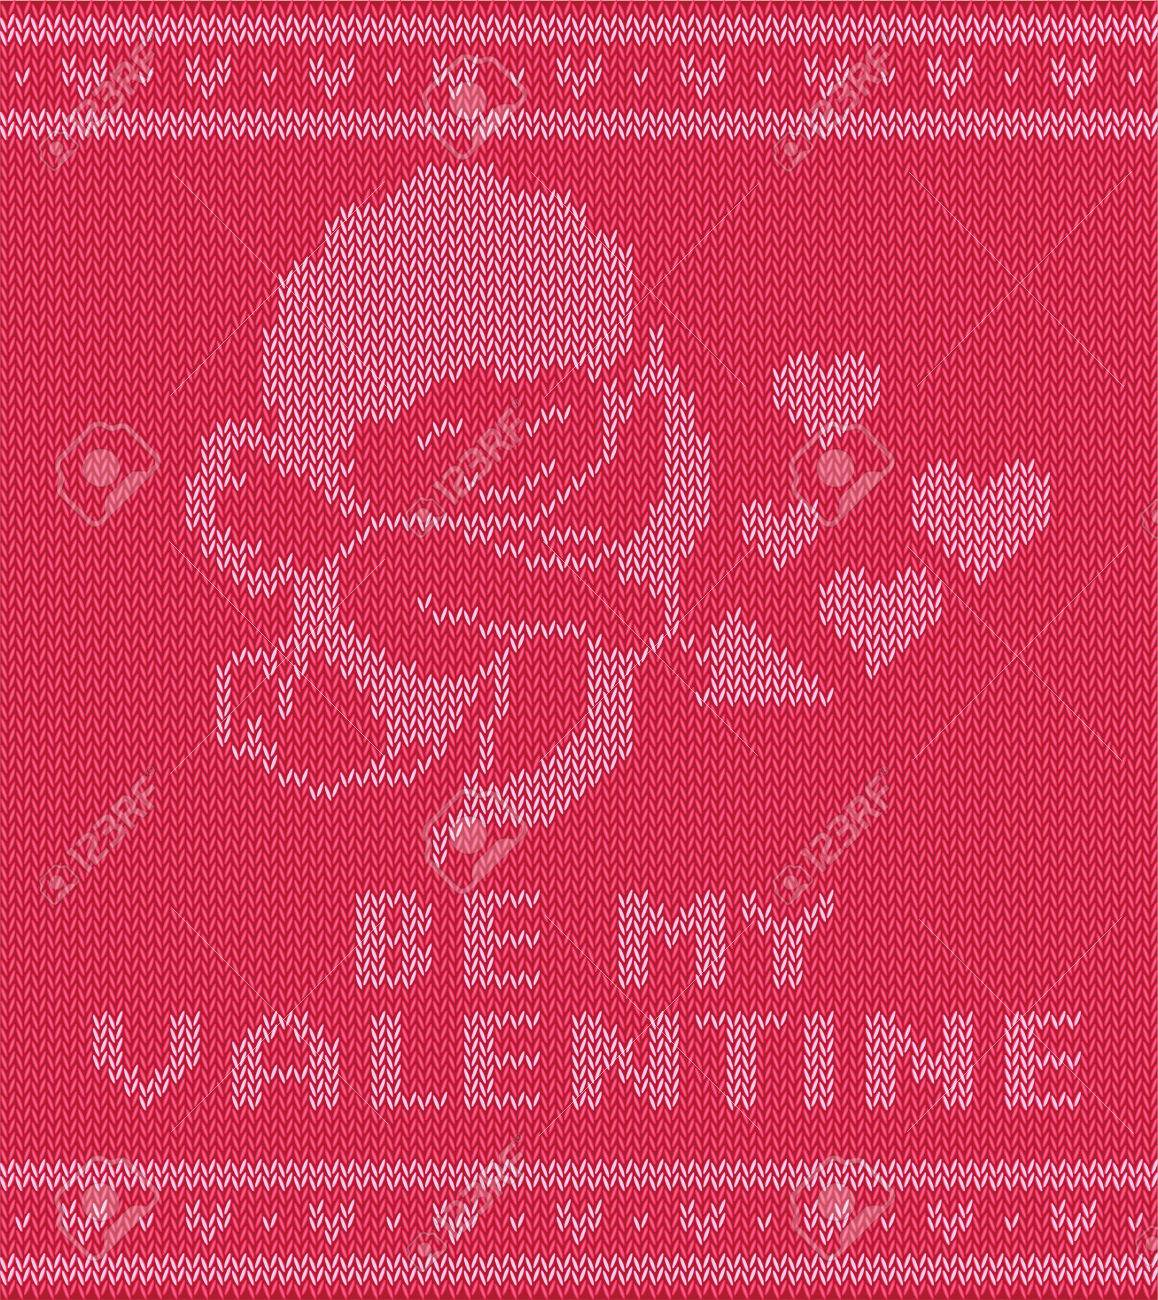 Valentine Day Knitting Pattern With Cupidon, Vector Illustration ...